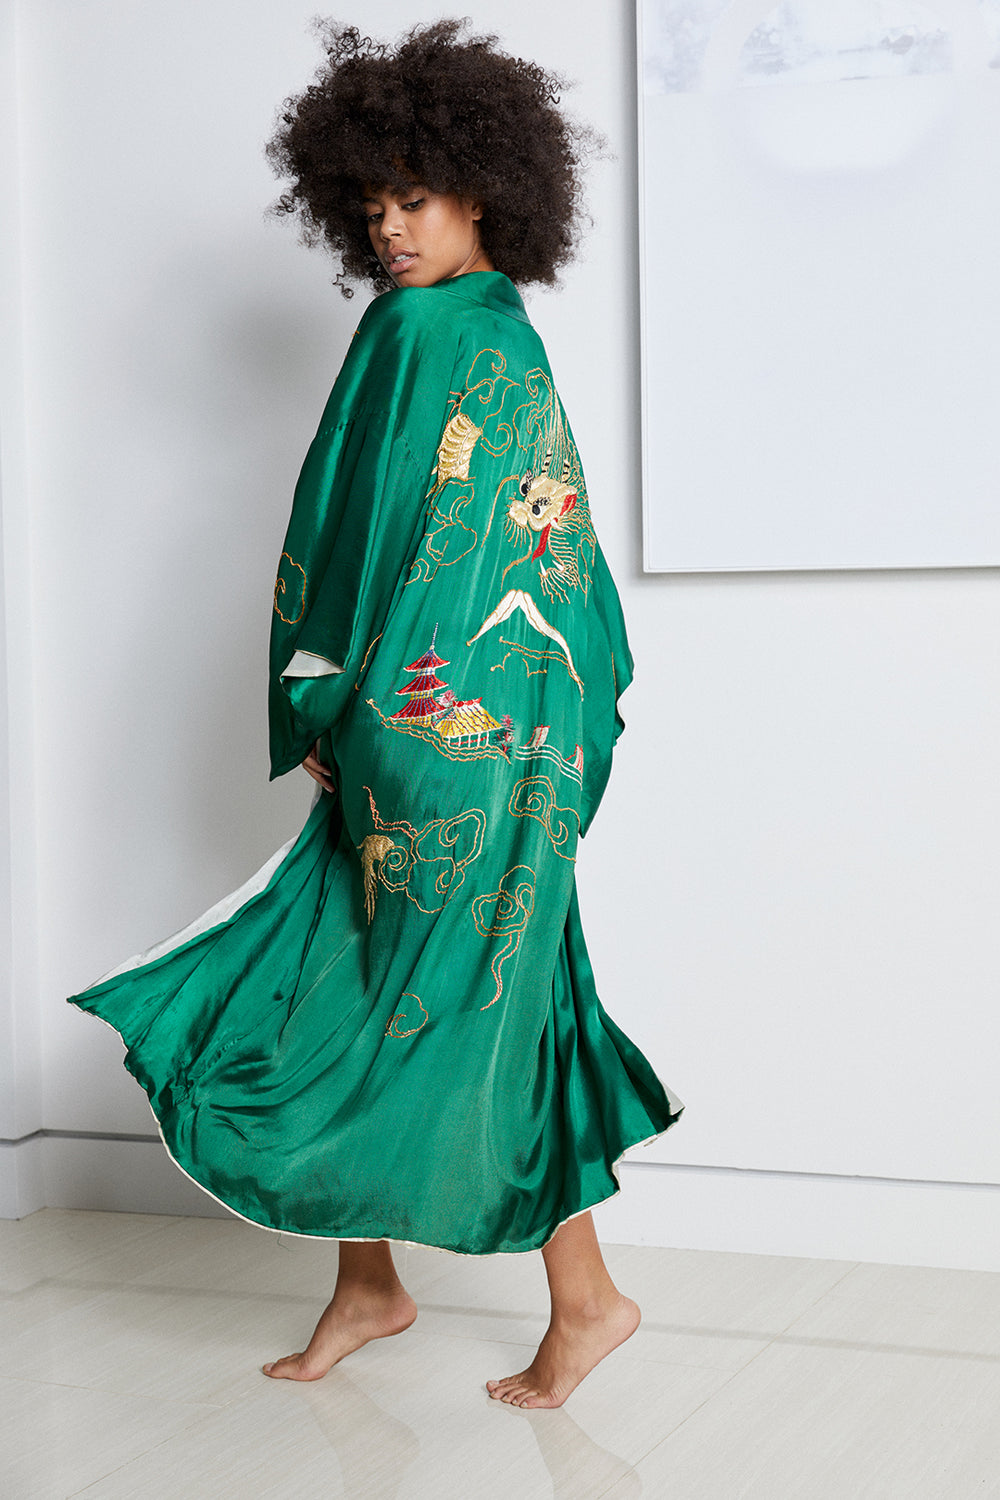 Green long vintage kimono with nature detailing and asian inspired